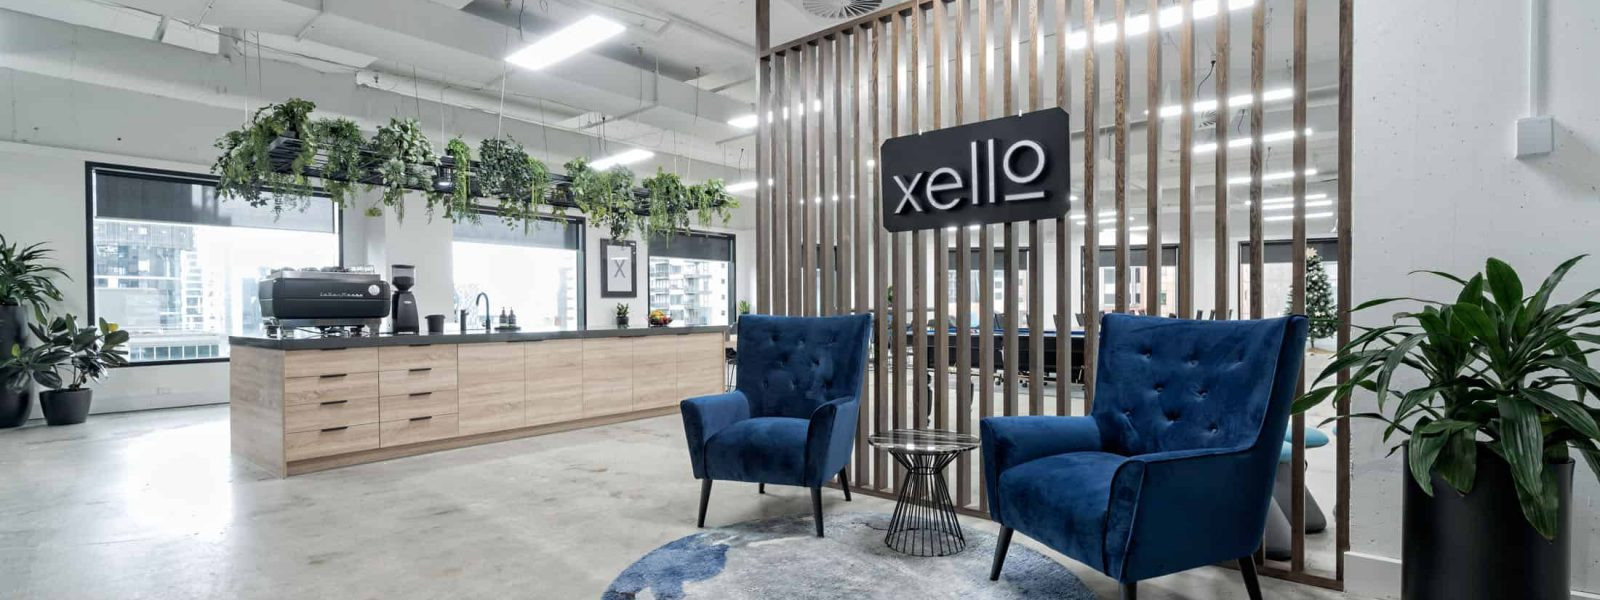 Office Fitouts Melbourne, Xello | Contour Interiors